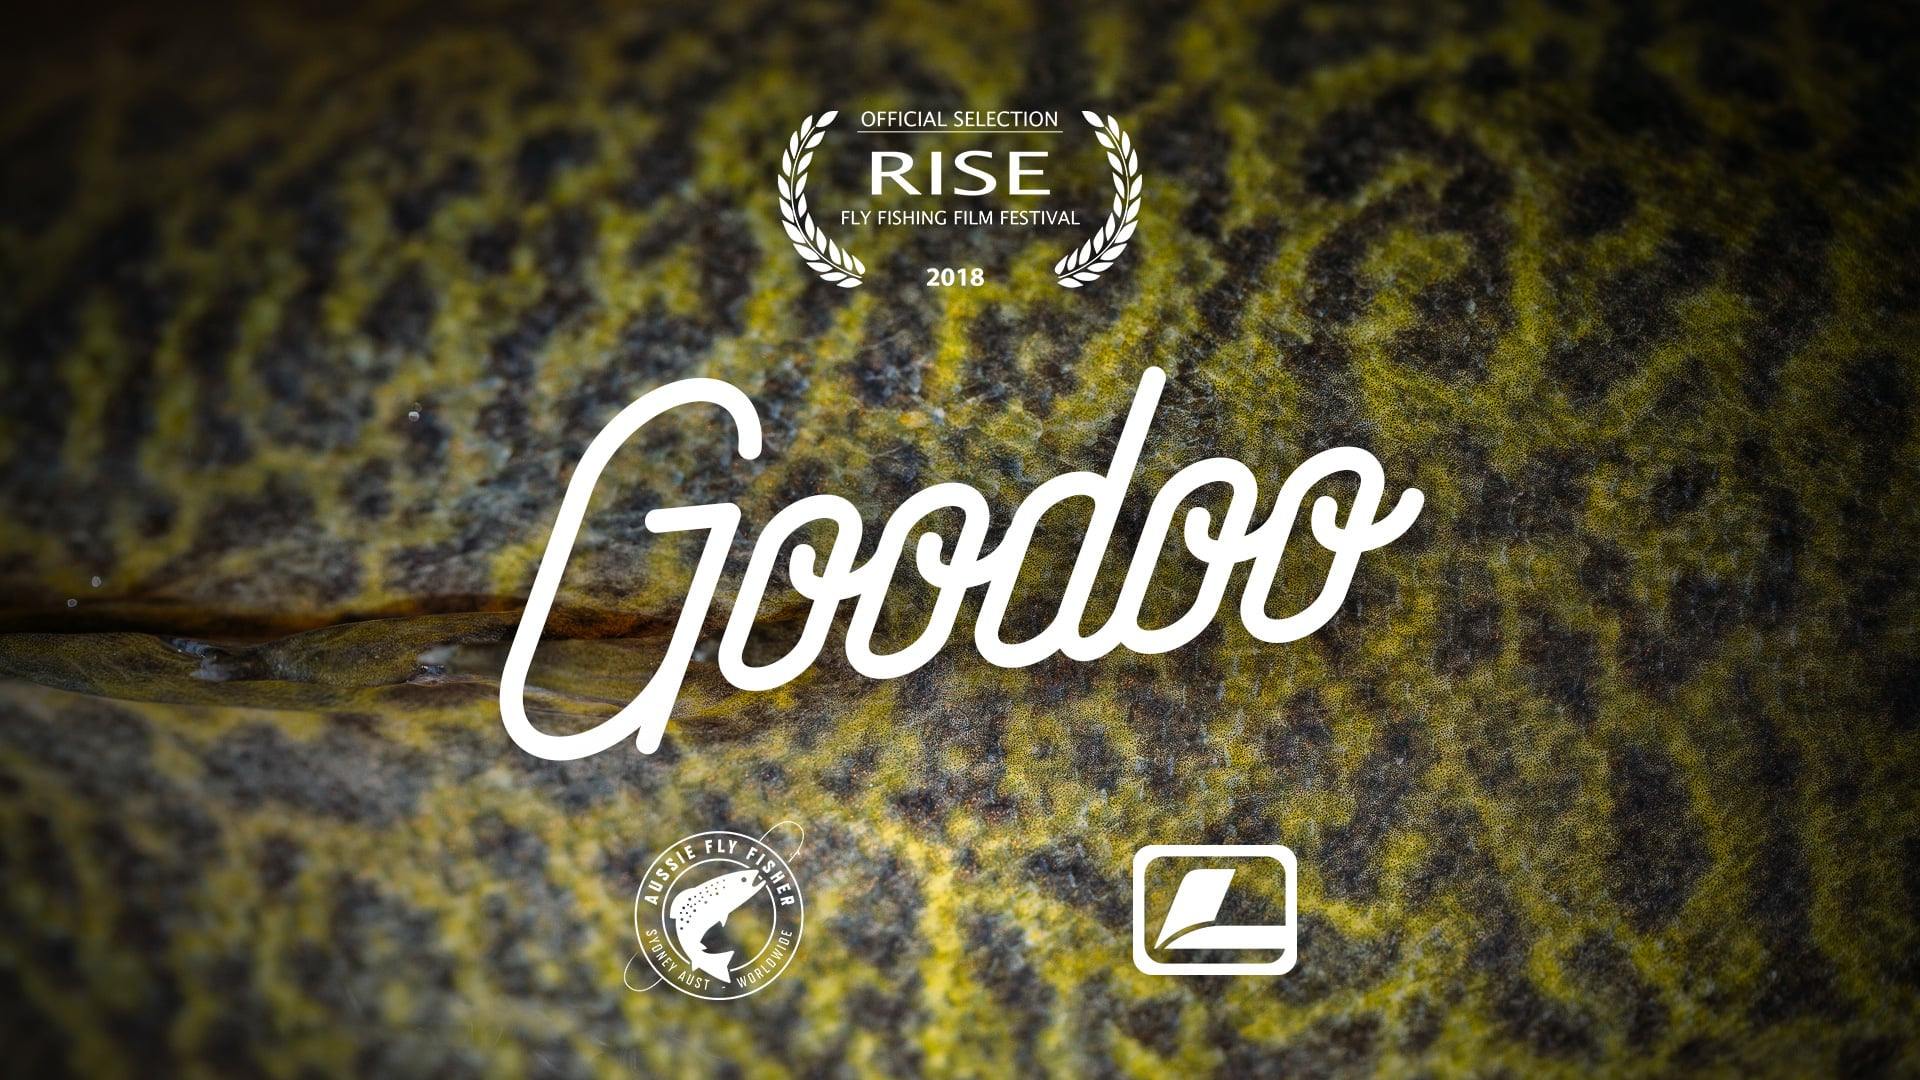 Goodoo-Trailer-Aussie-Fly-Fisher-Rise-Film-Festival